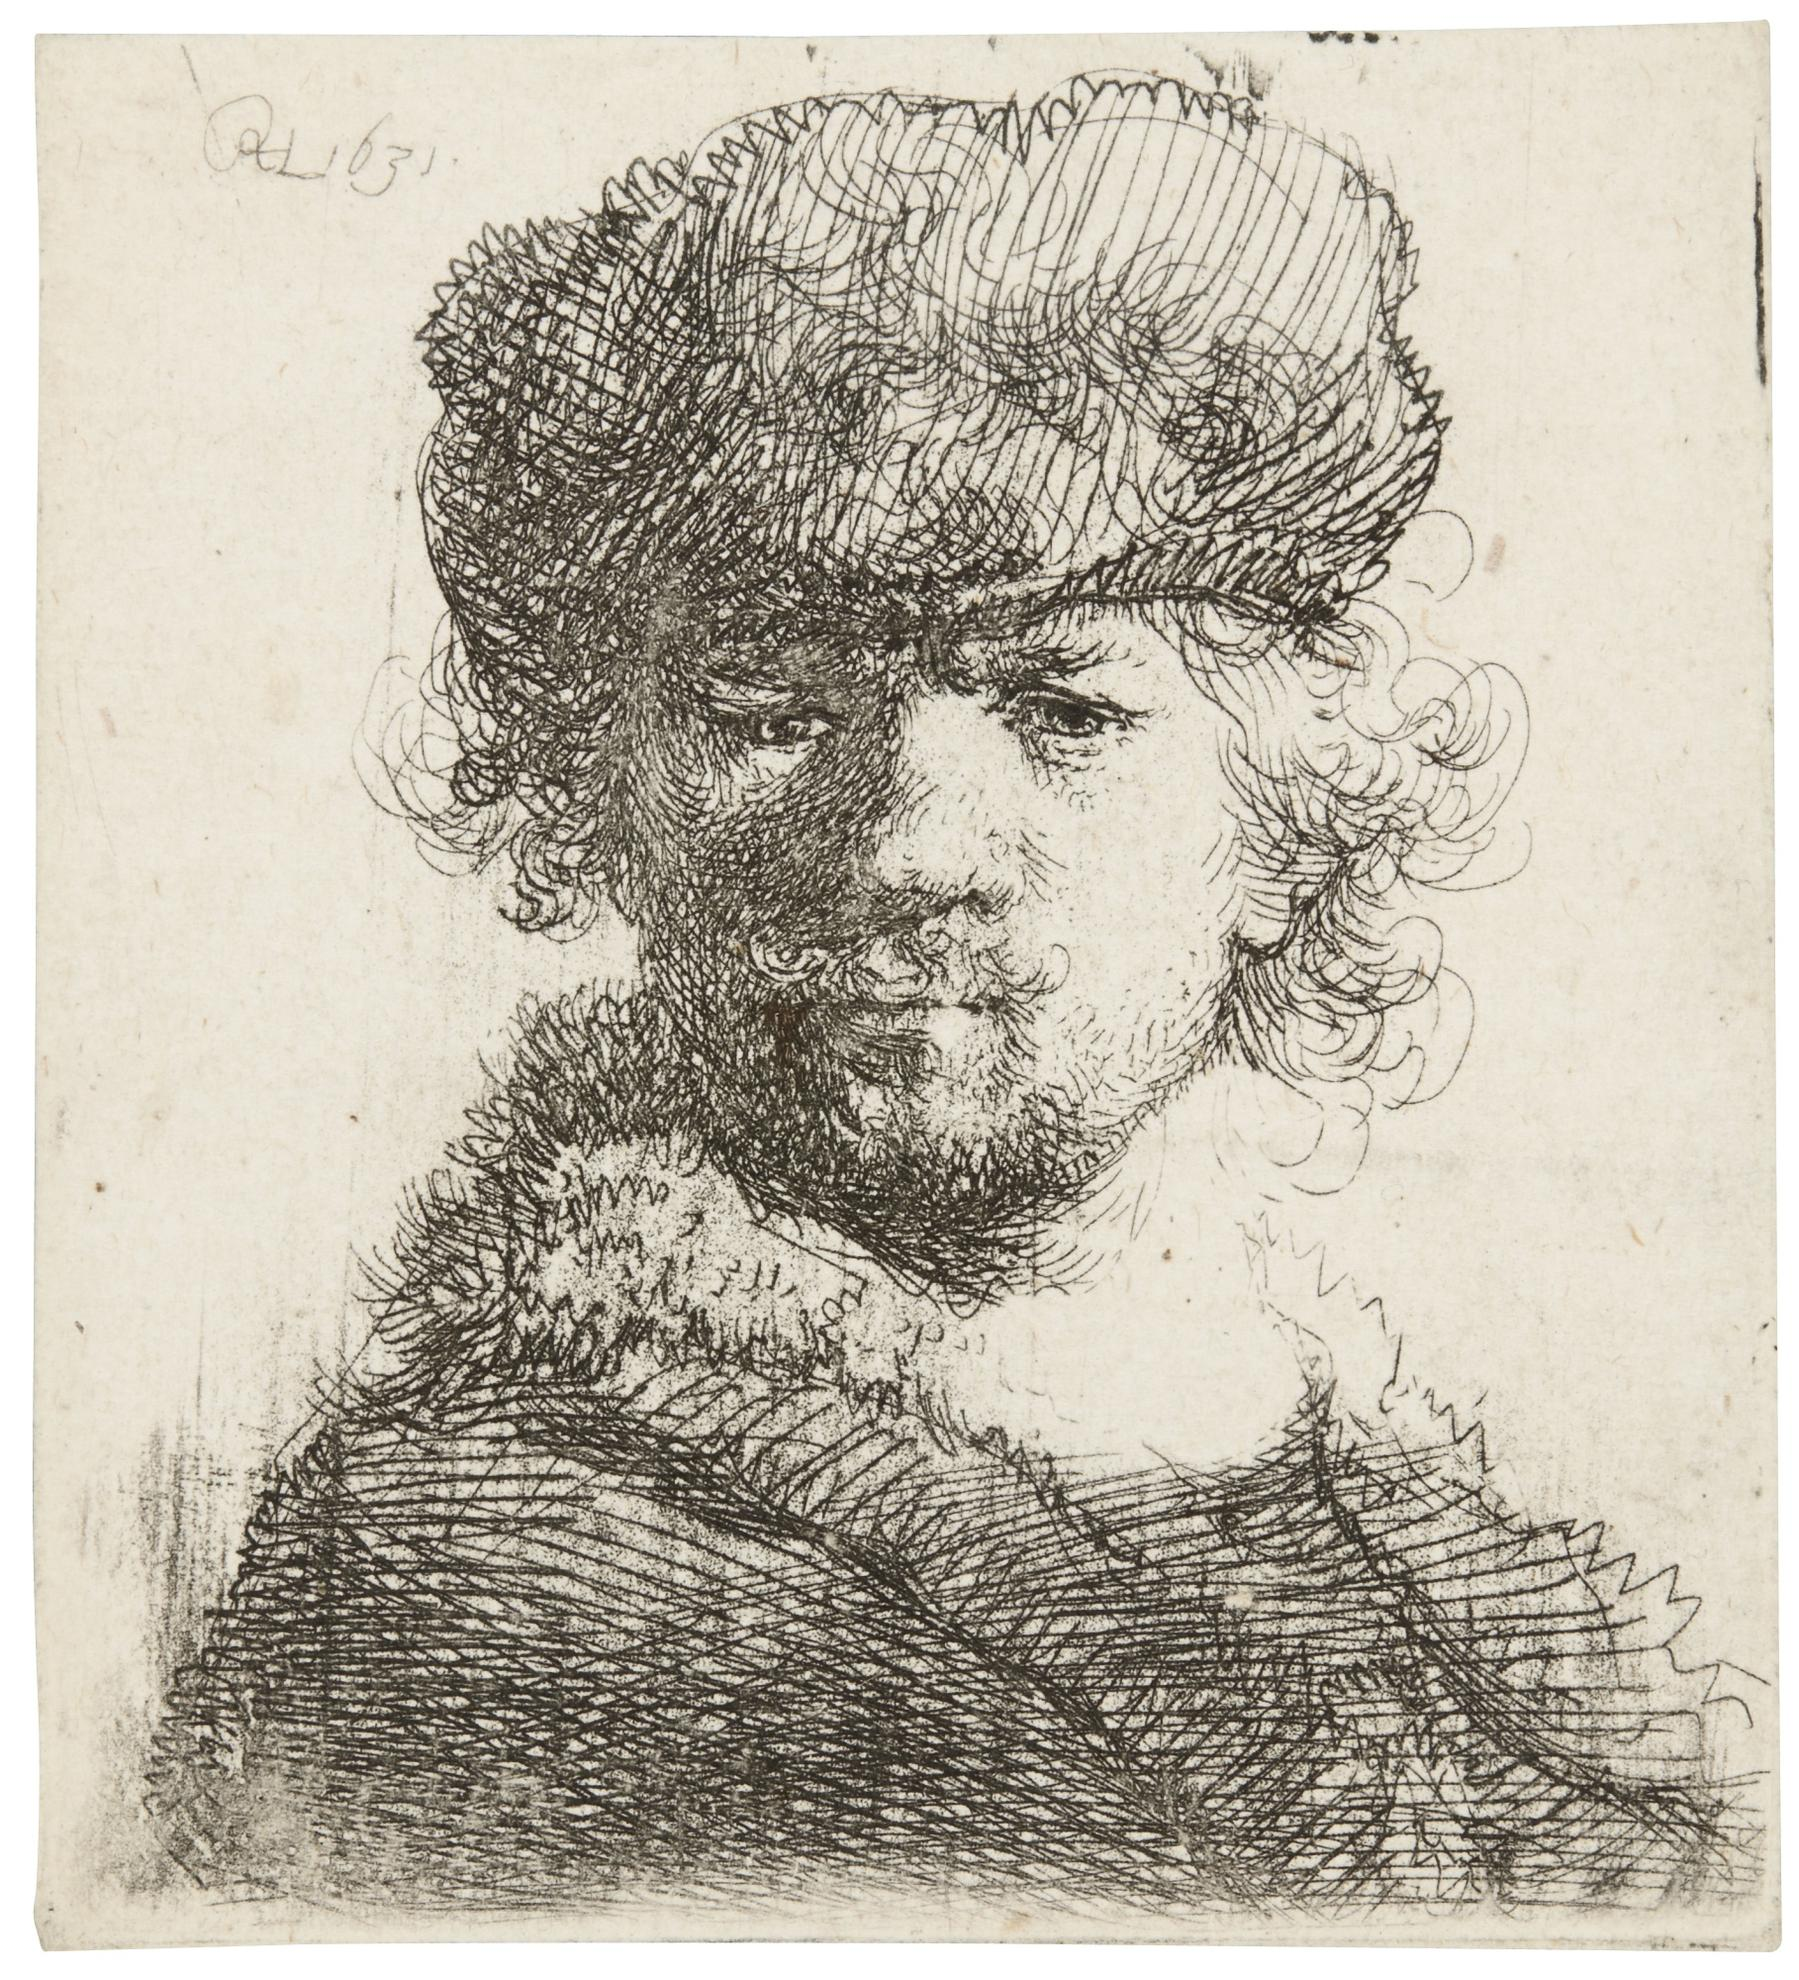 Rembrandt van Rijn-Self-Portrait In A Heavy Fur Cap (B., Holl. 16, New Holl. 80, H. 56)-1631